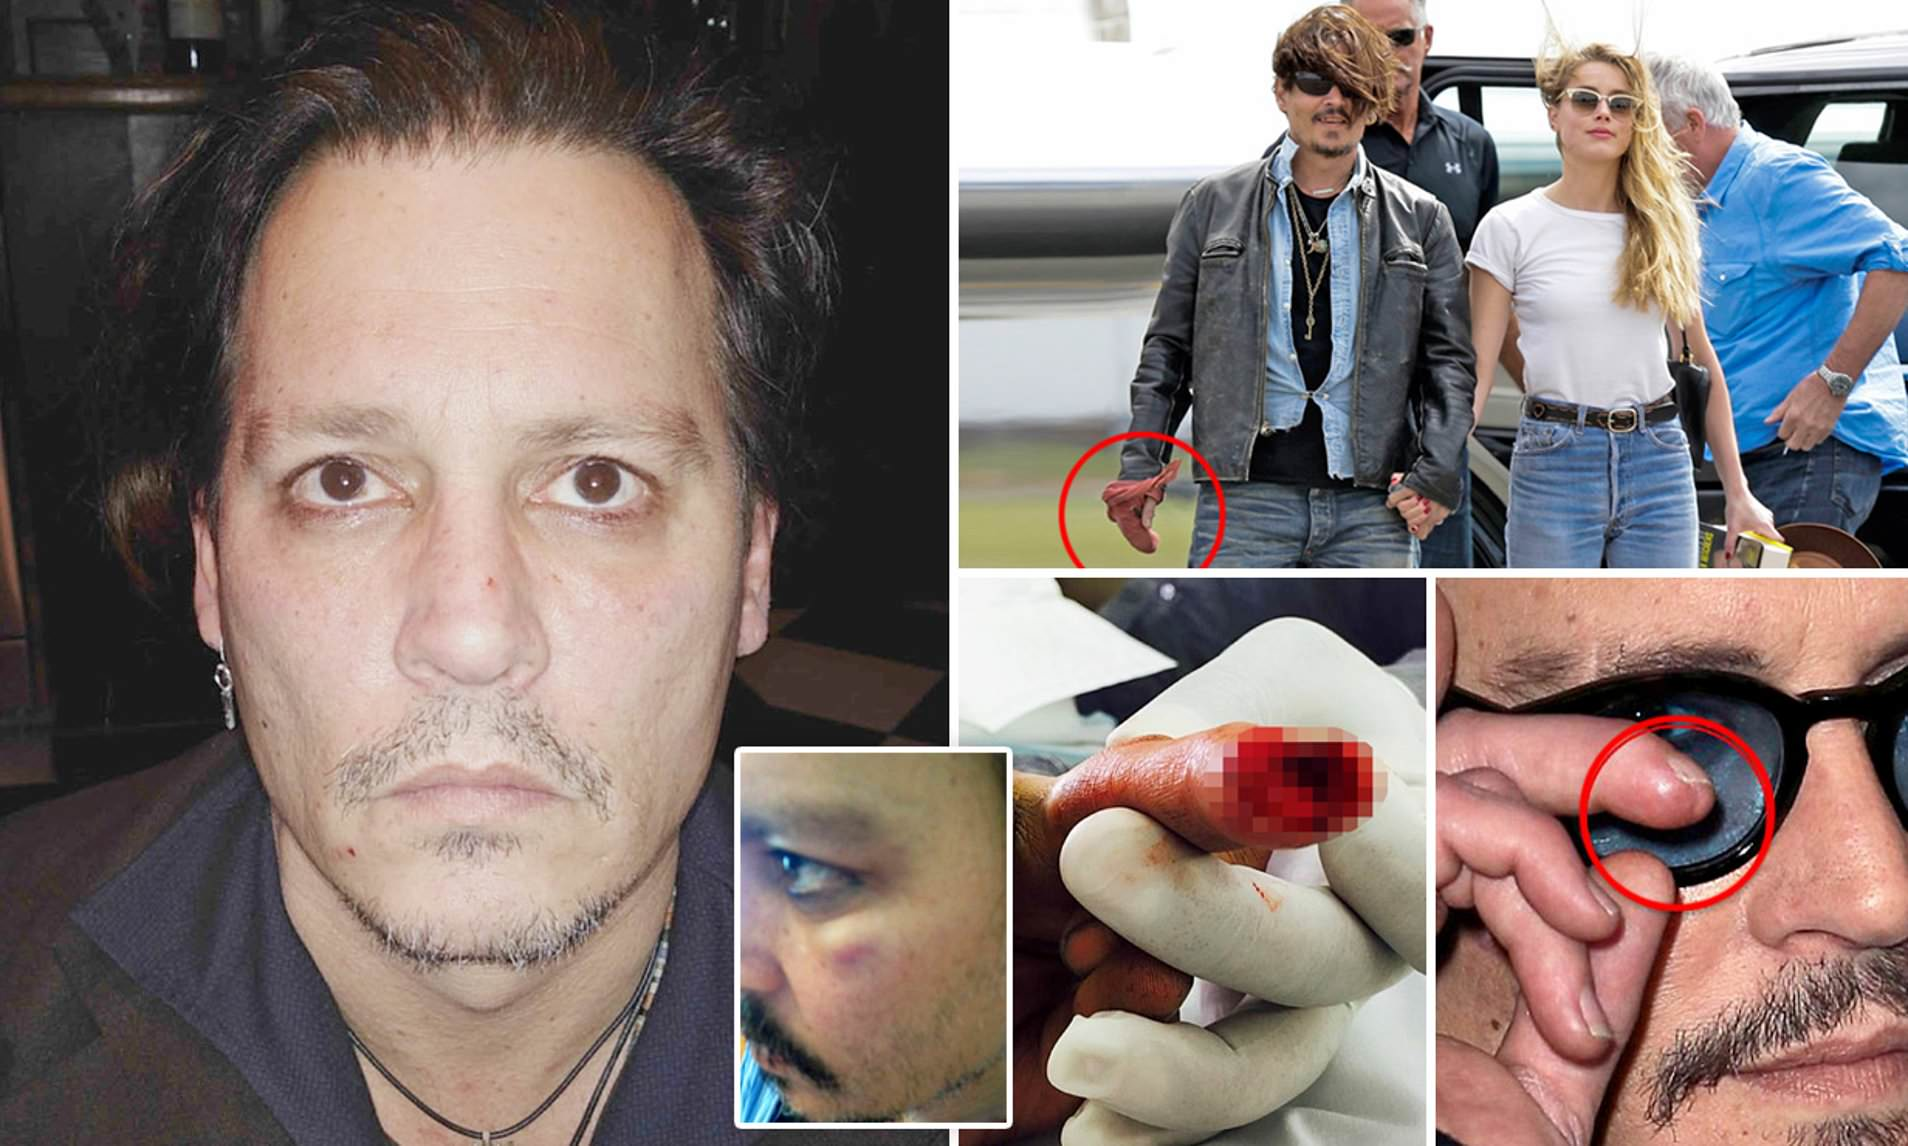 Johnny Depp was brutally beaten by his ex-wife